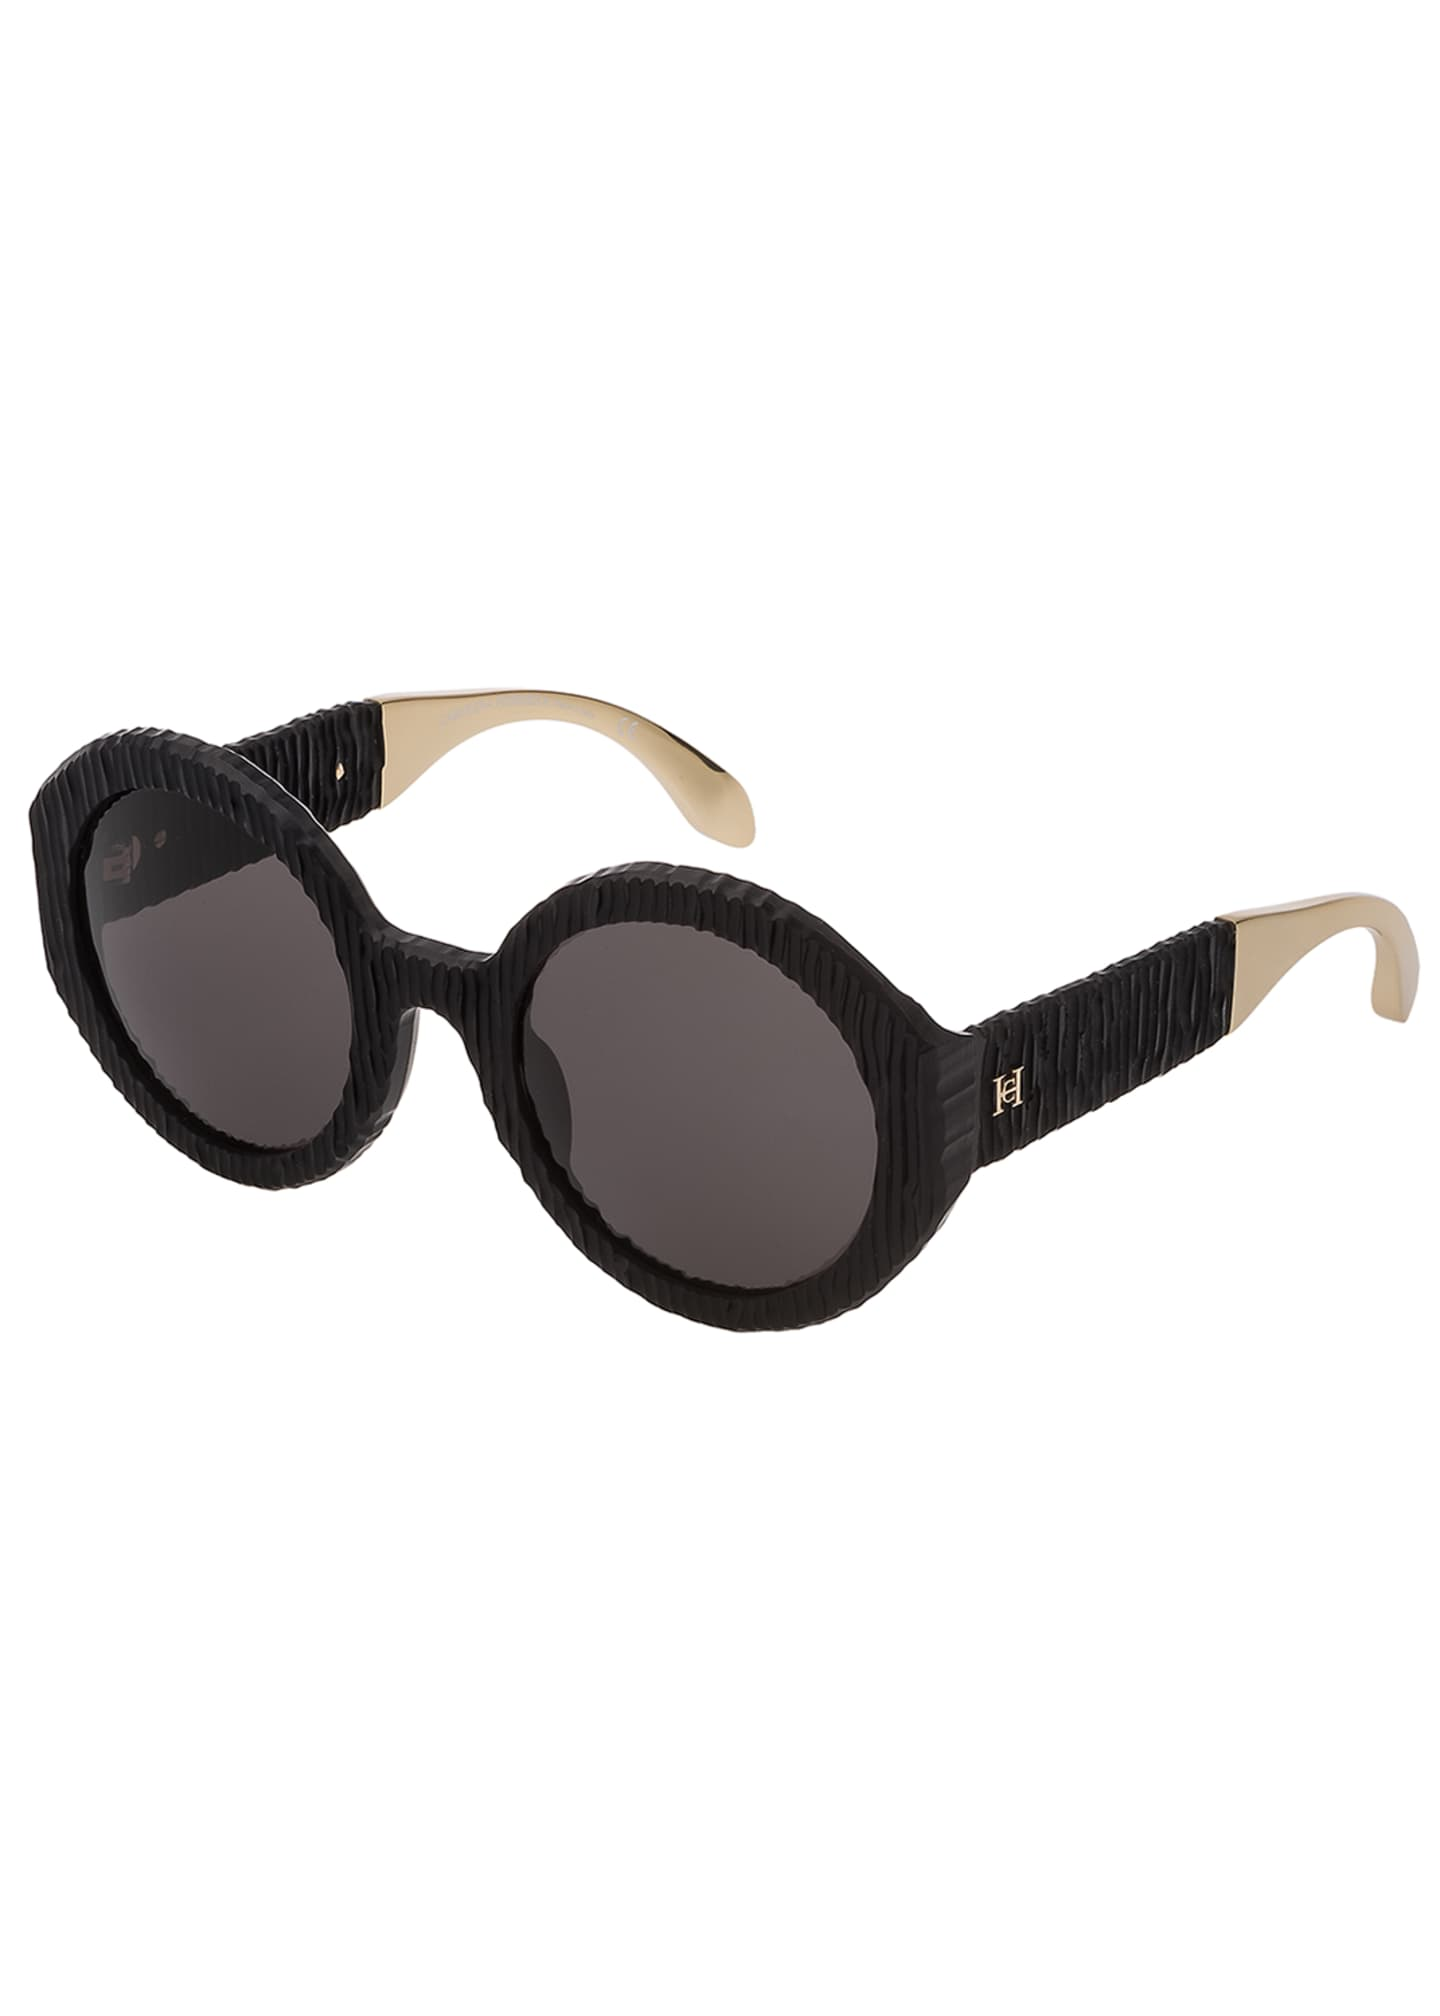 Carolina Herrera Round Textured Acetate Sunglasses